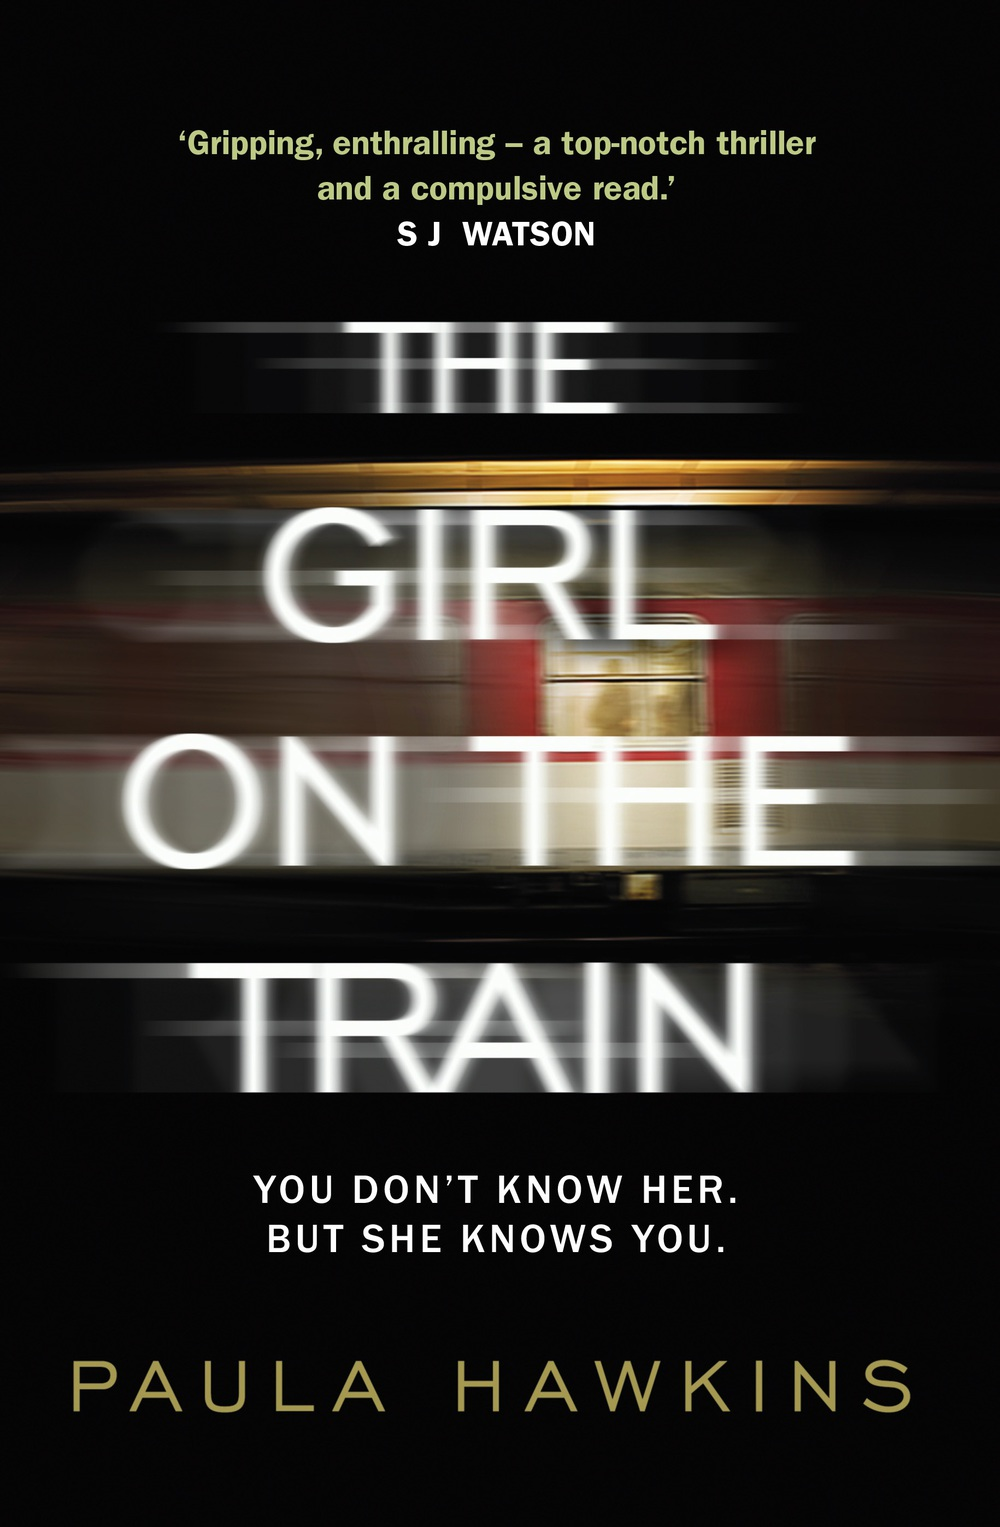 https://i1.wp.com/s3-eu-west-1.amazonaws.com/tra-rgfe/assets/856/large_The_Girl_on_the_Train_full_cover.jpg